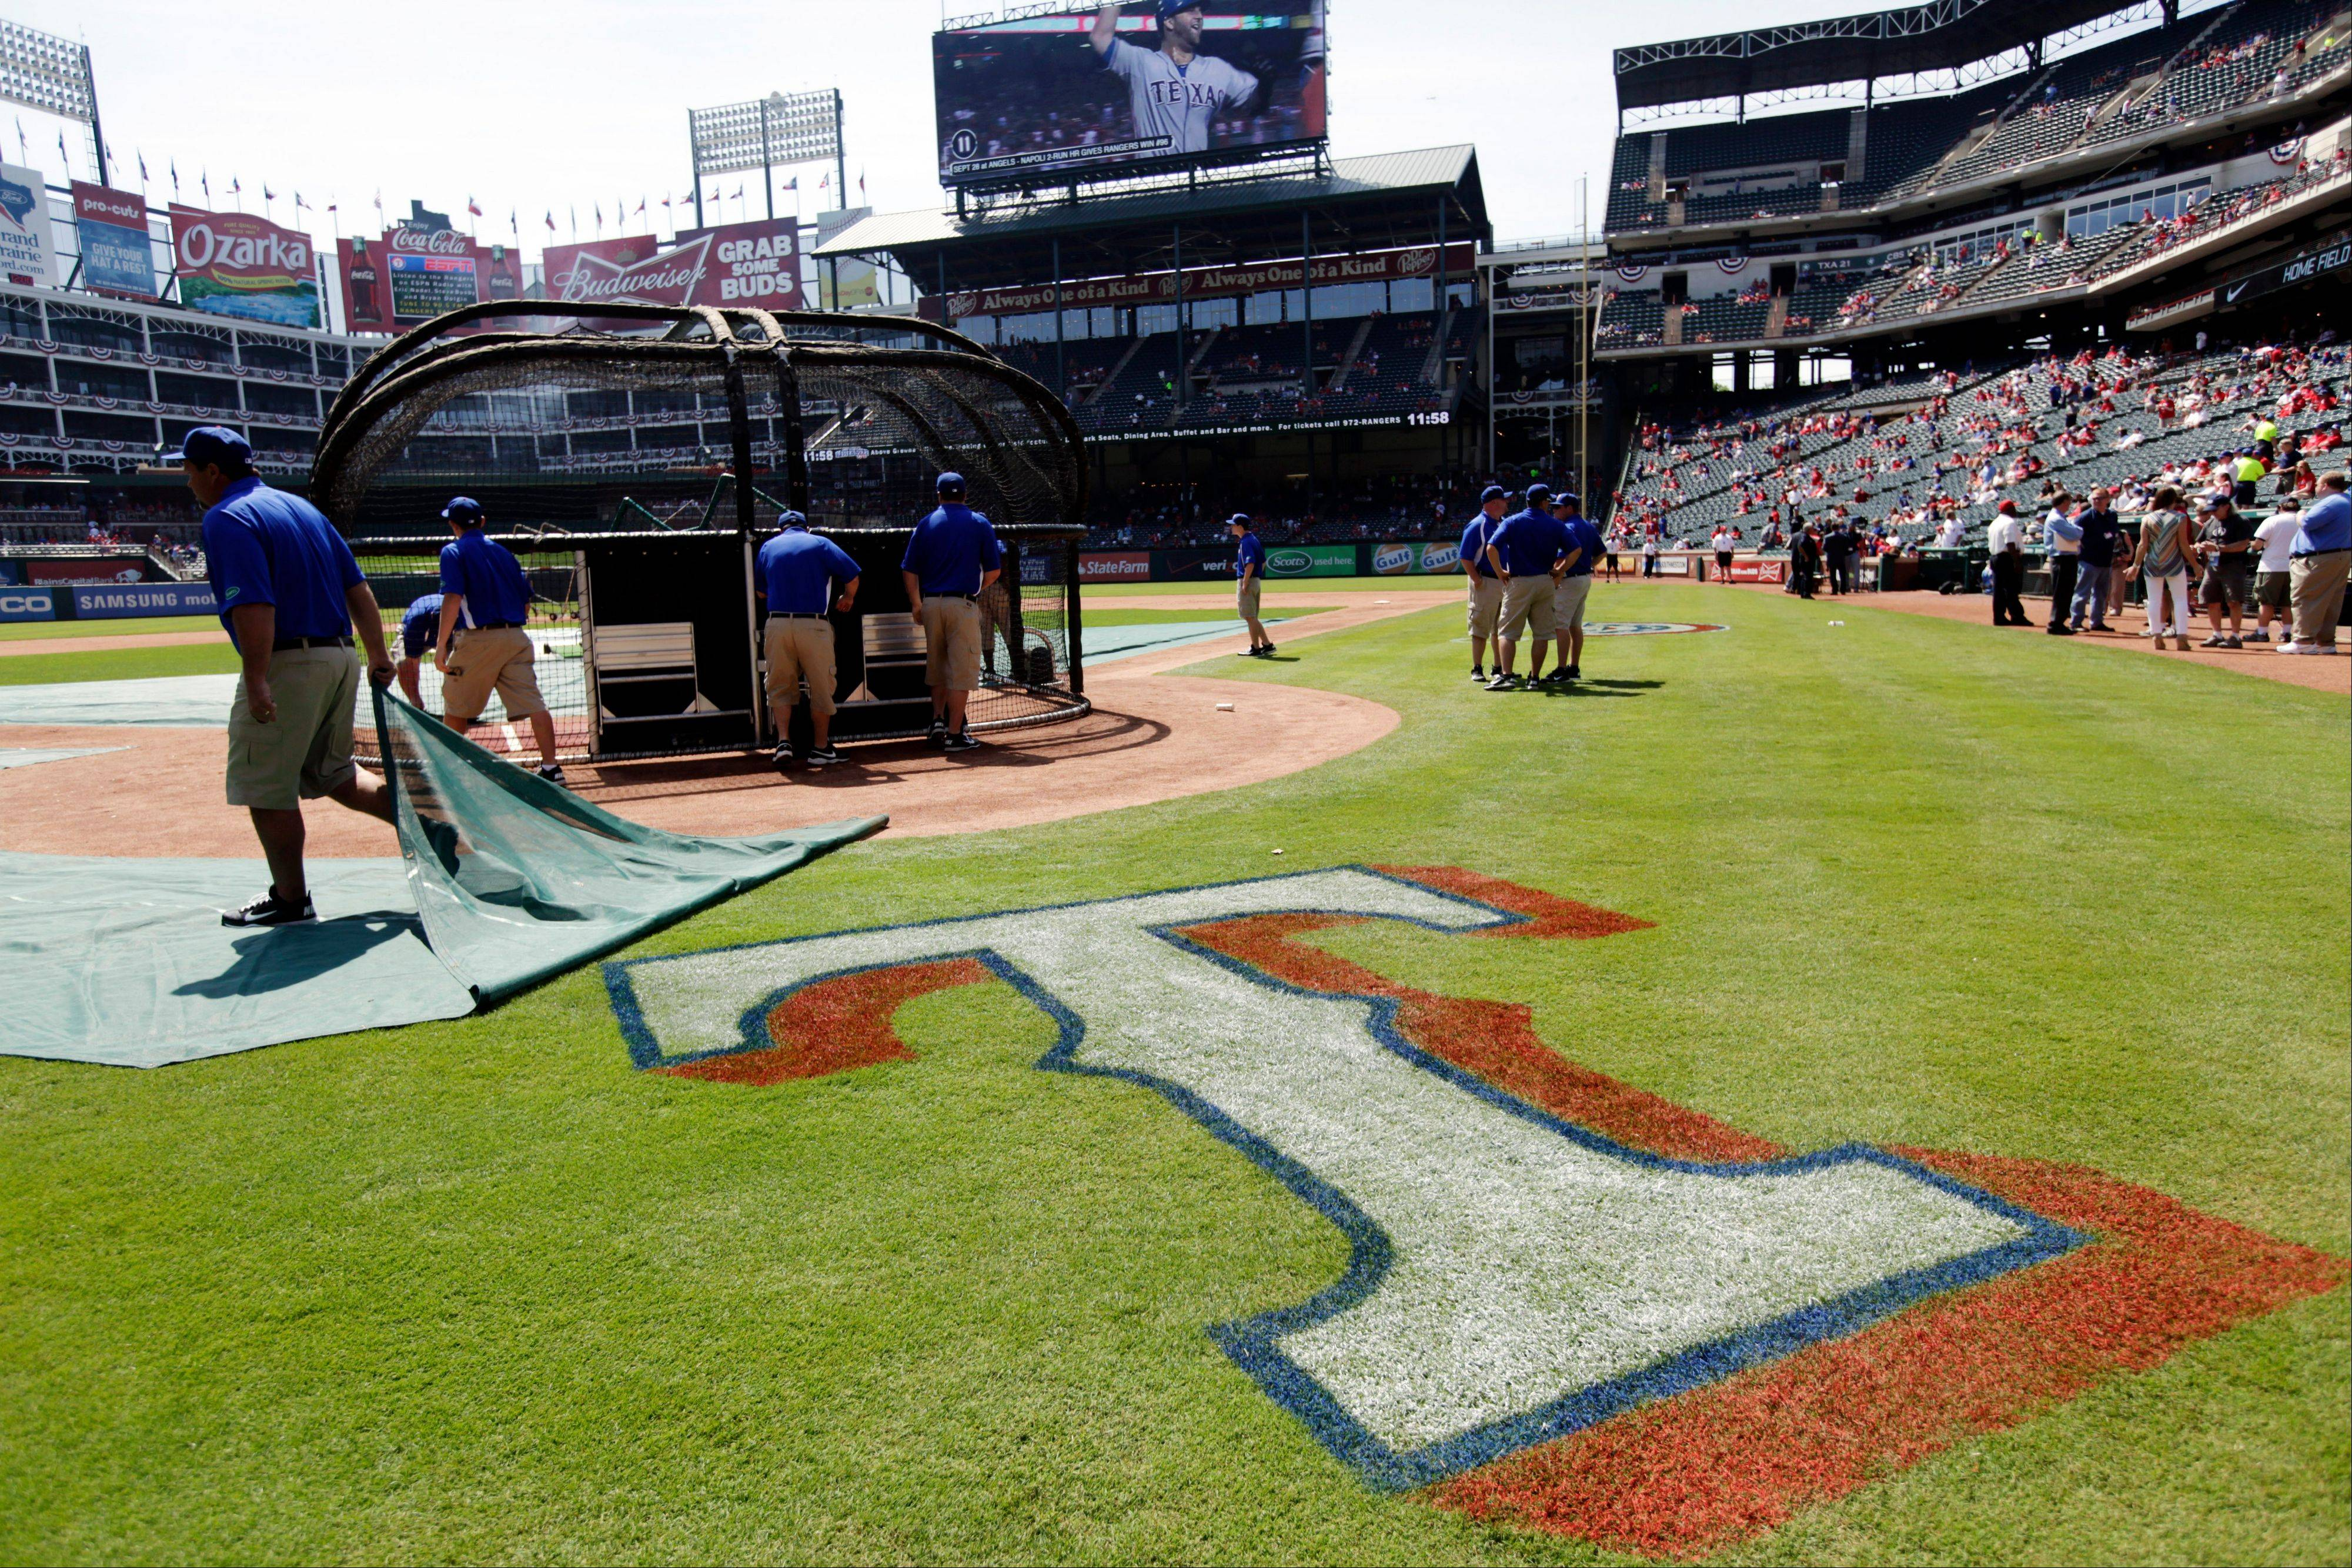 The Texas Rangers logo is uncovered before a baseball game against the Chicago White Sox Friday, April 6, 2012 in Arlington, Texas.